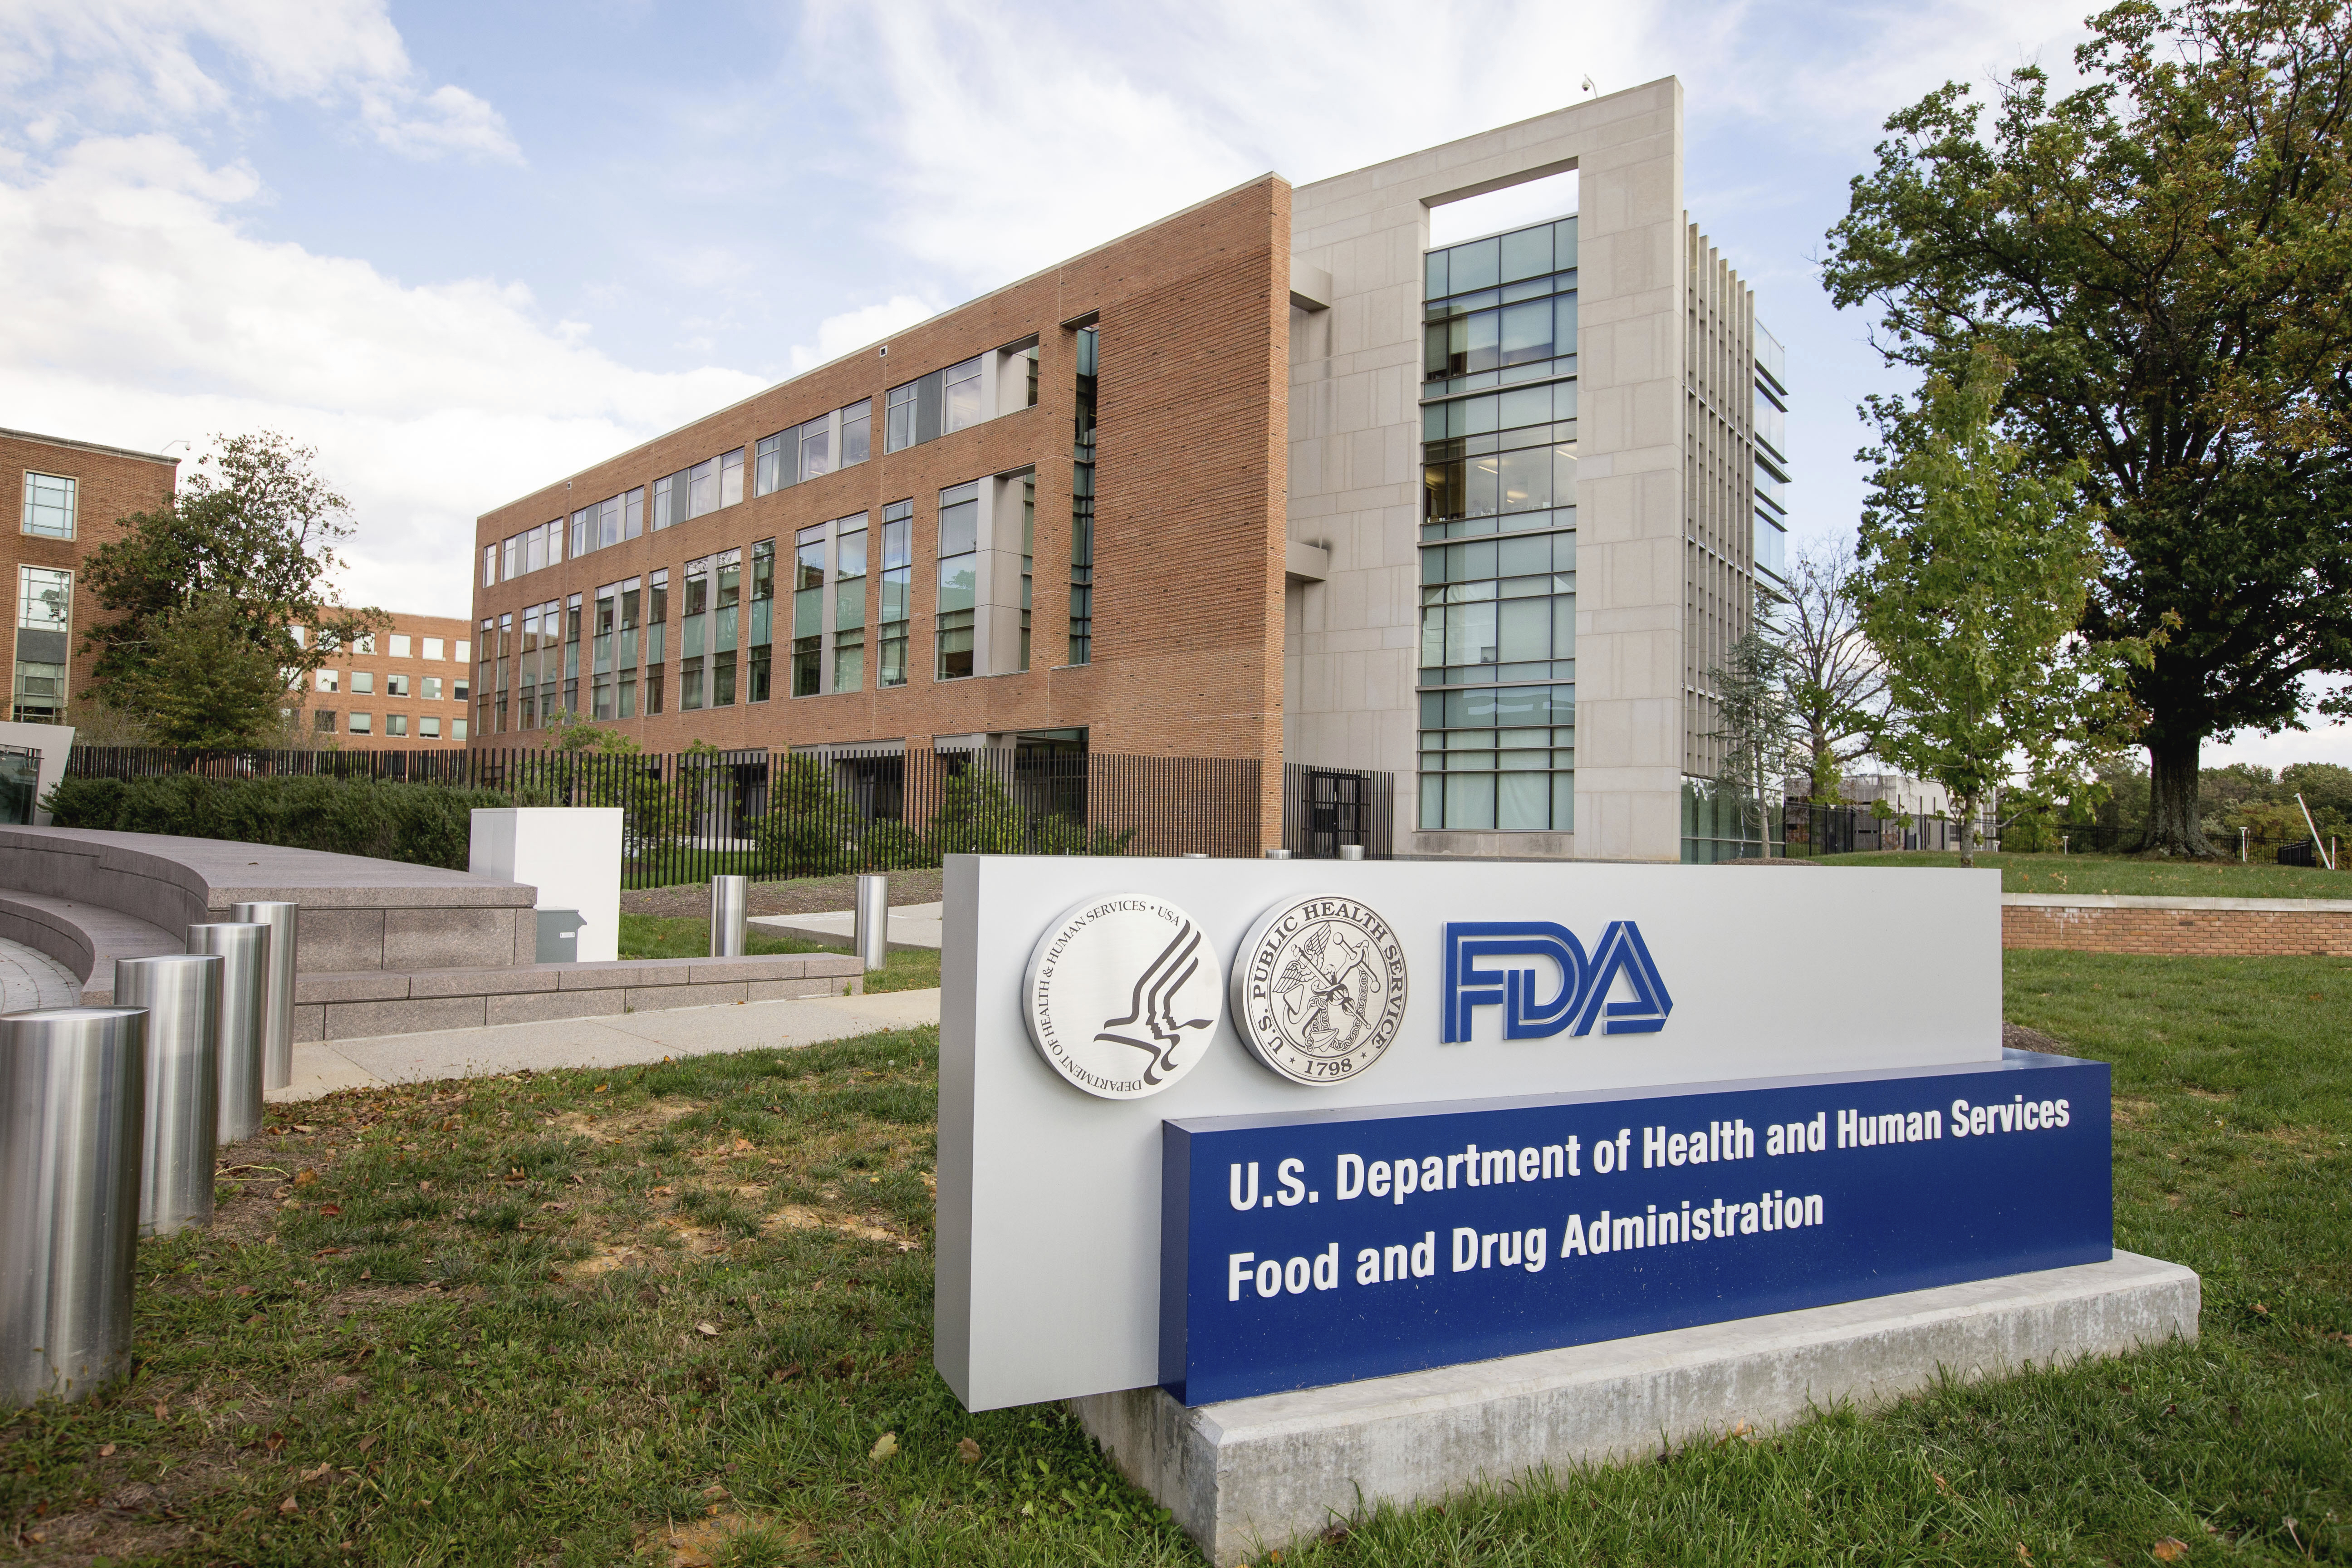 washingtonpost.com - Laurie McGinley - FDA orders surgical mesh for pelvic operations off the market